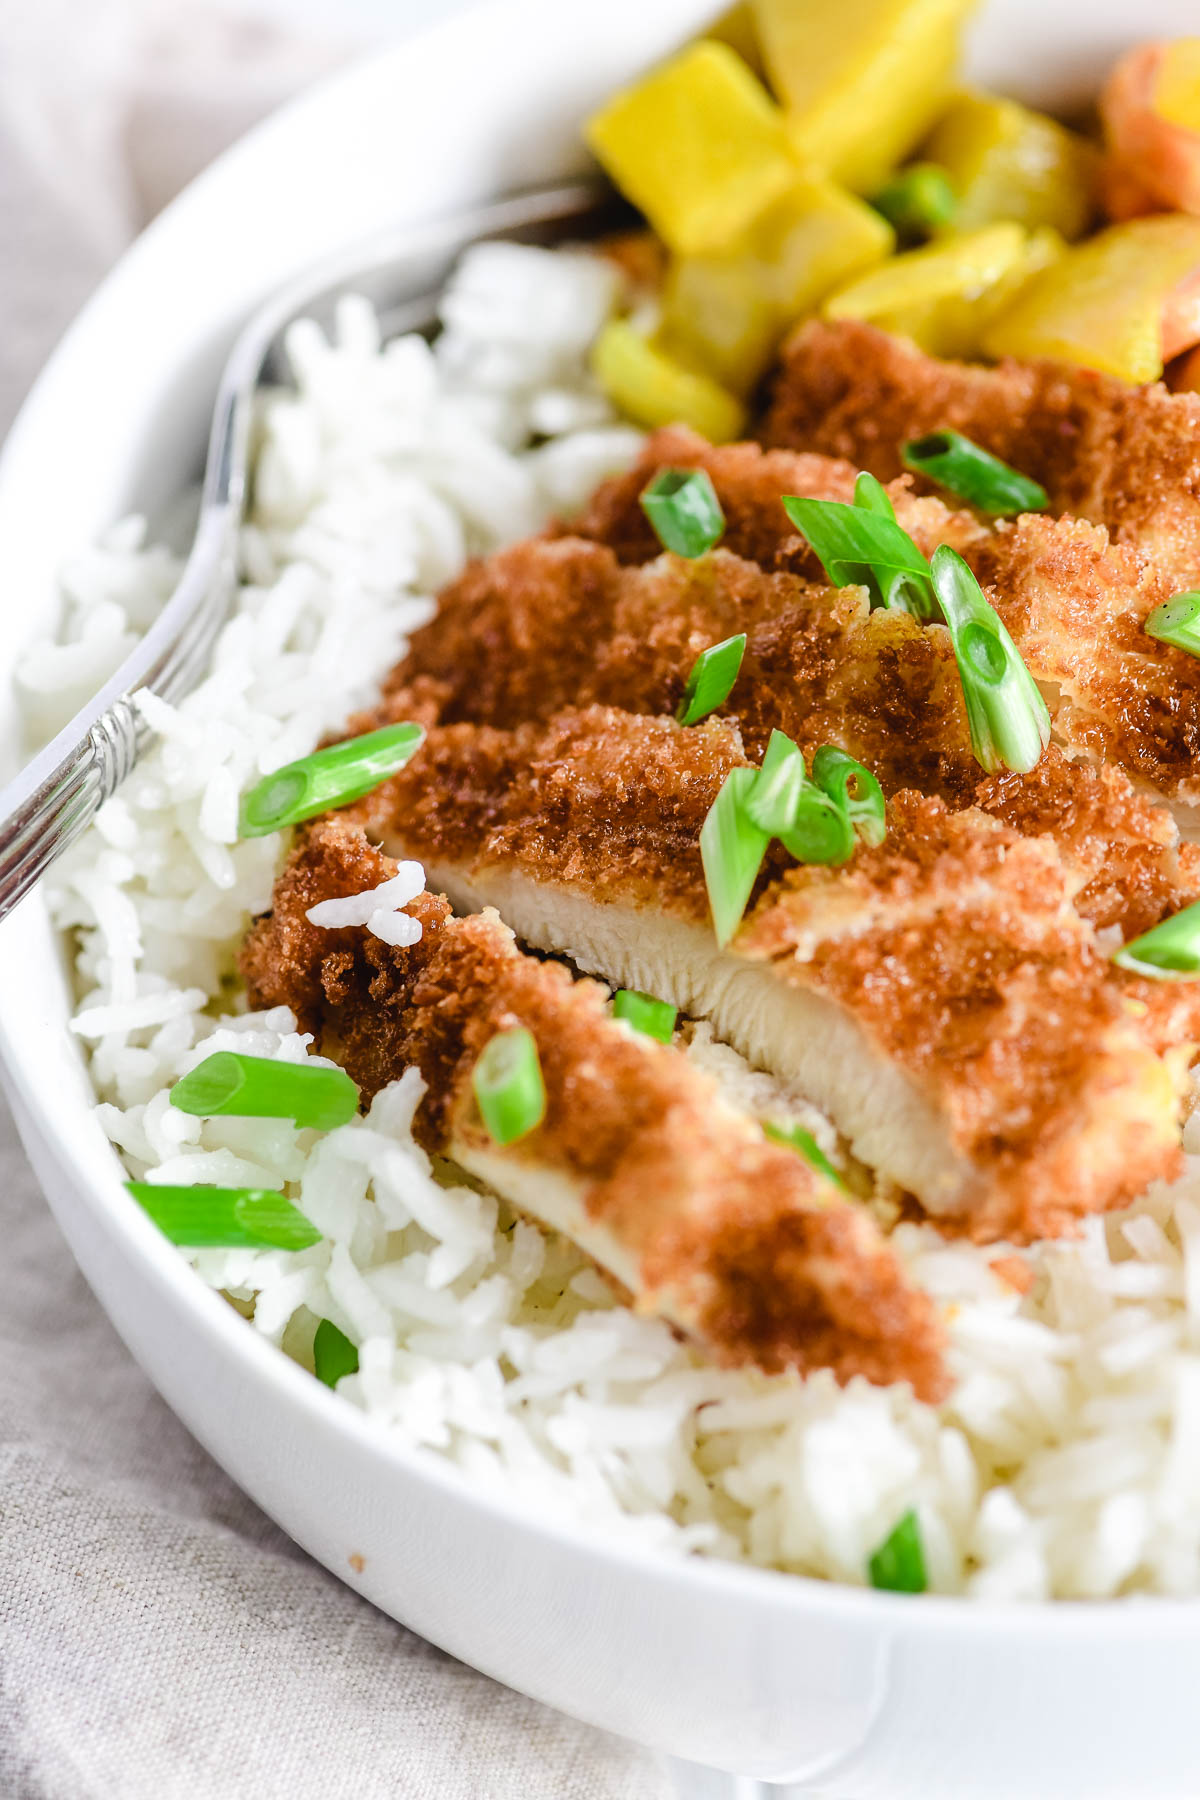 Crispy fried chicken cutlets on rice with Japanese curry